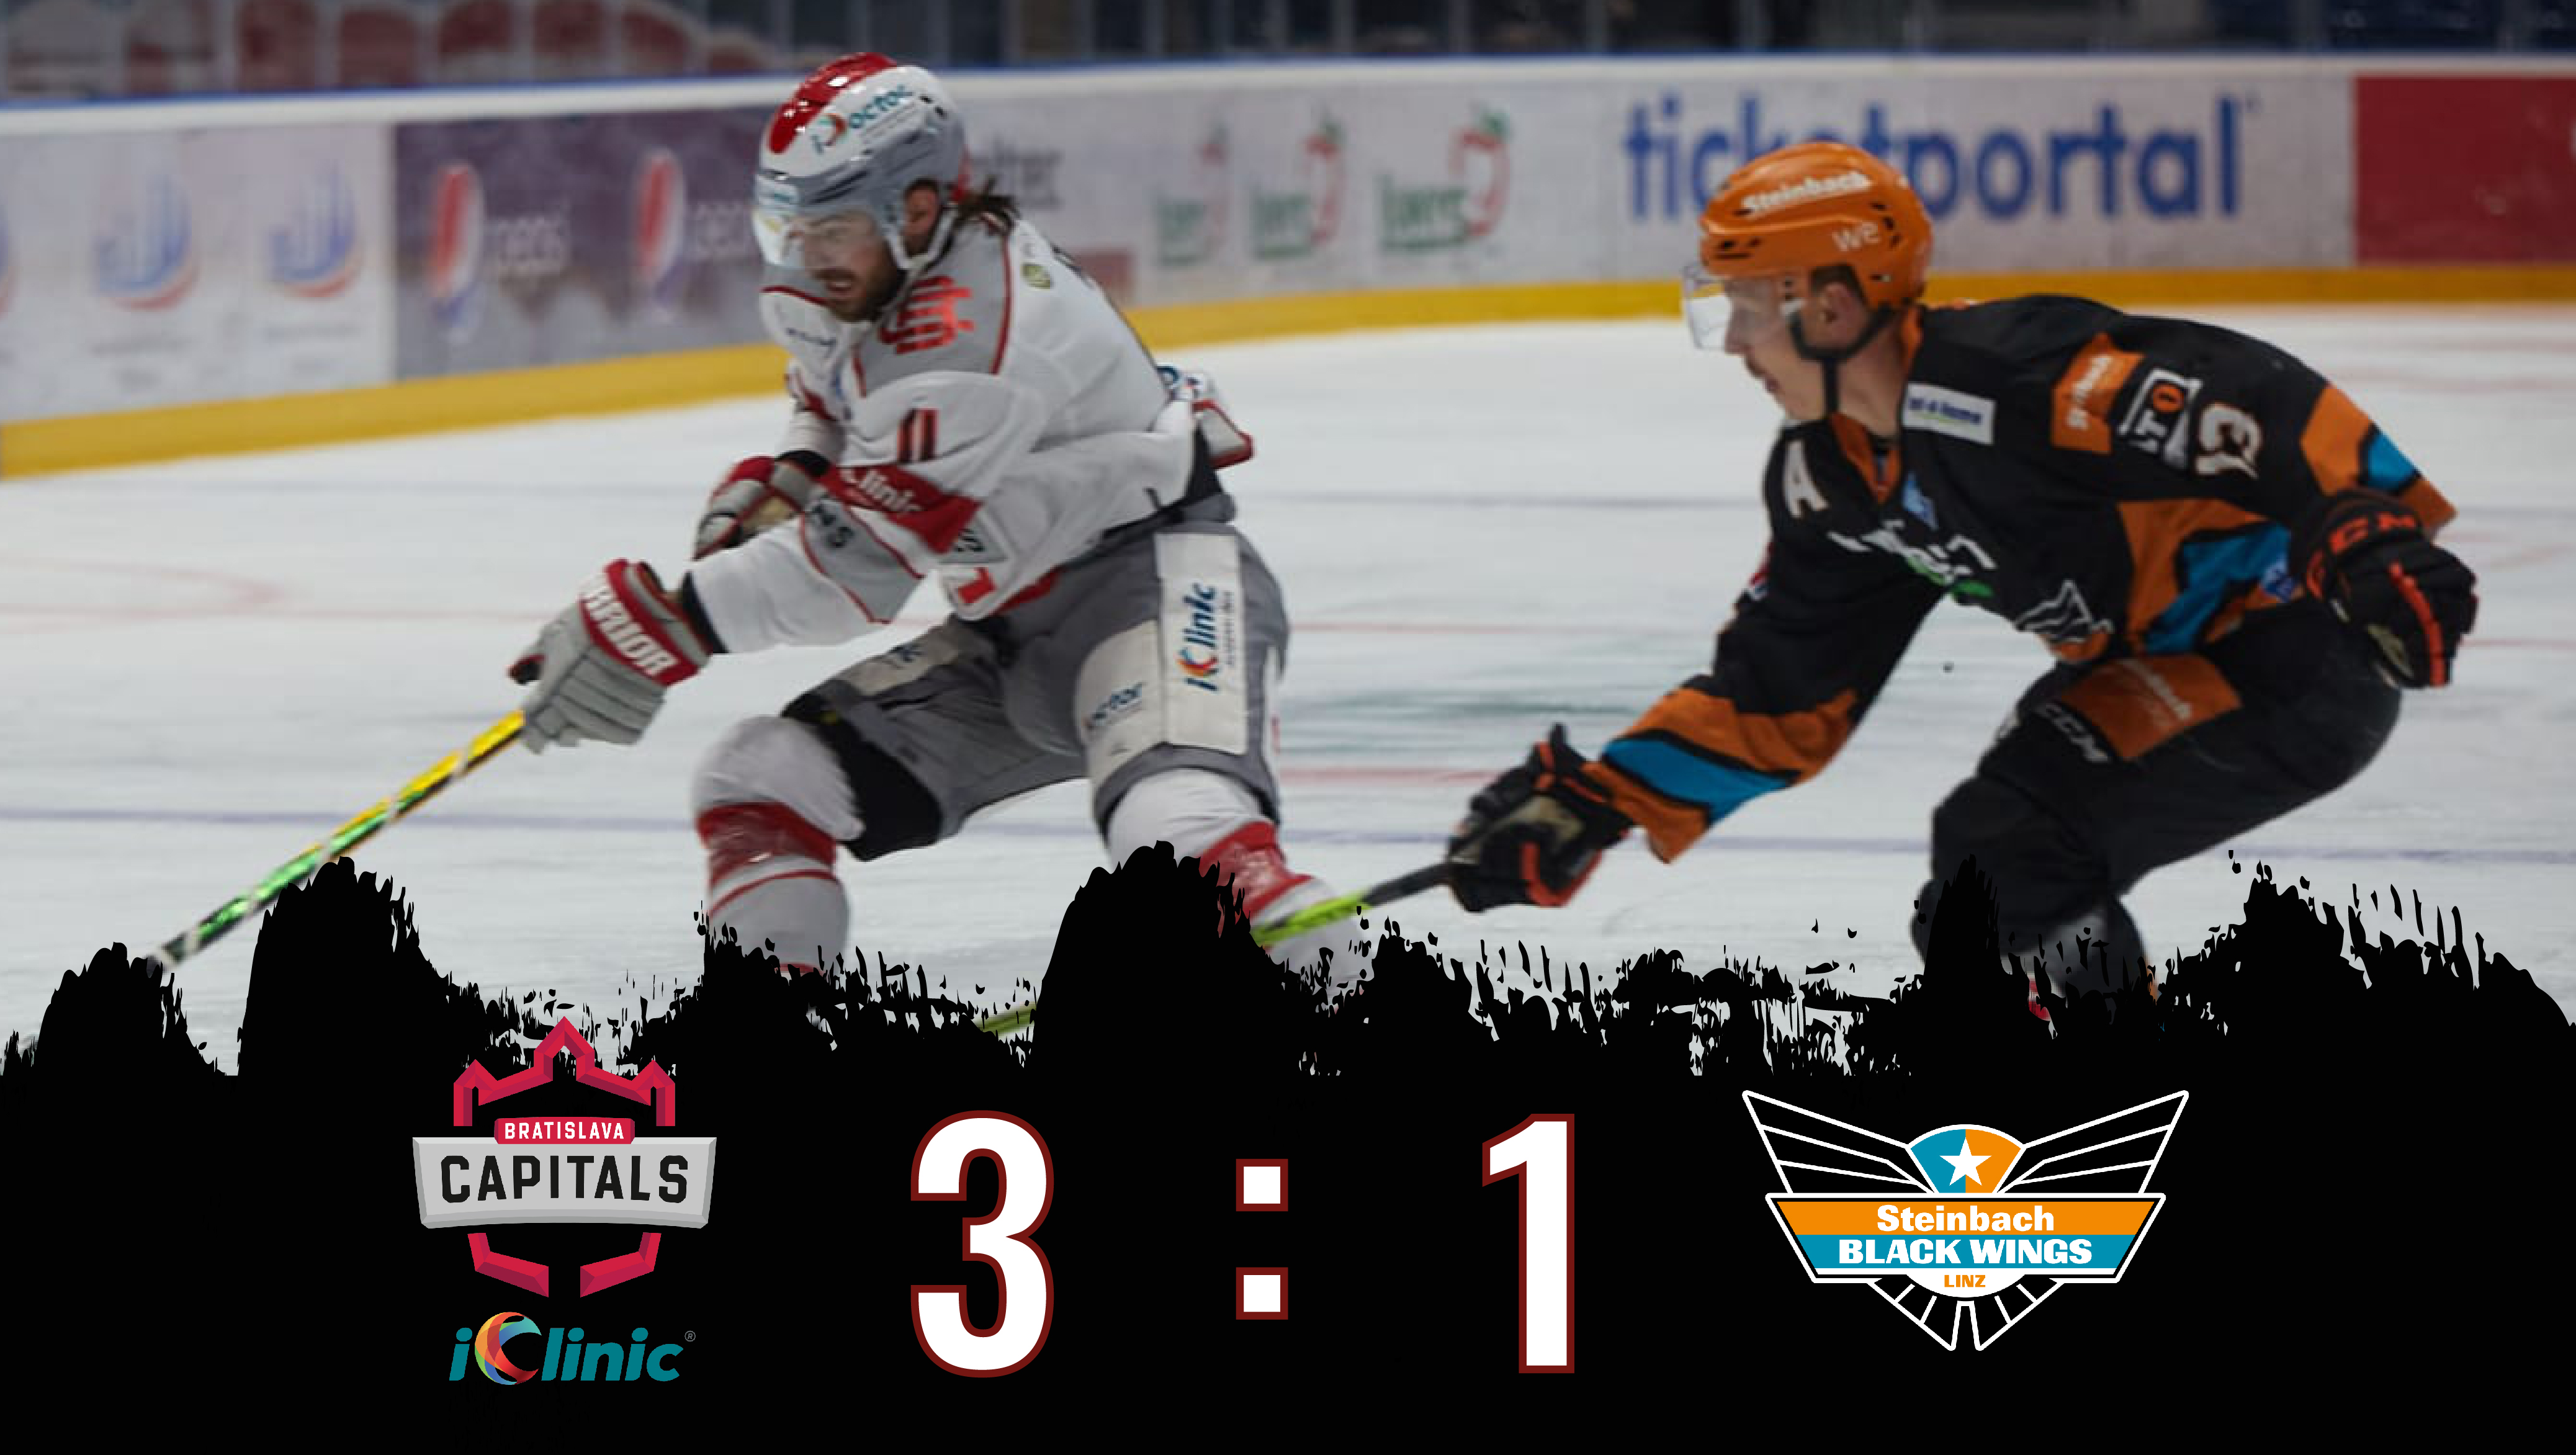 Win against Linz!